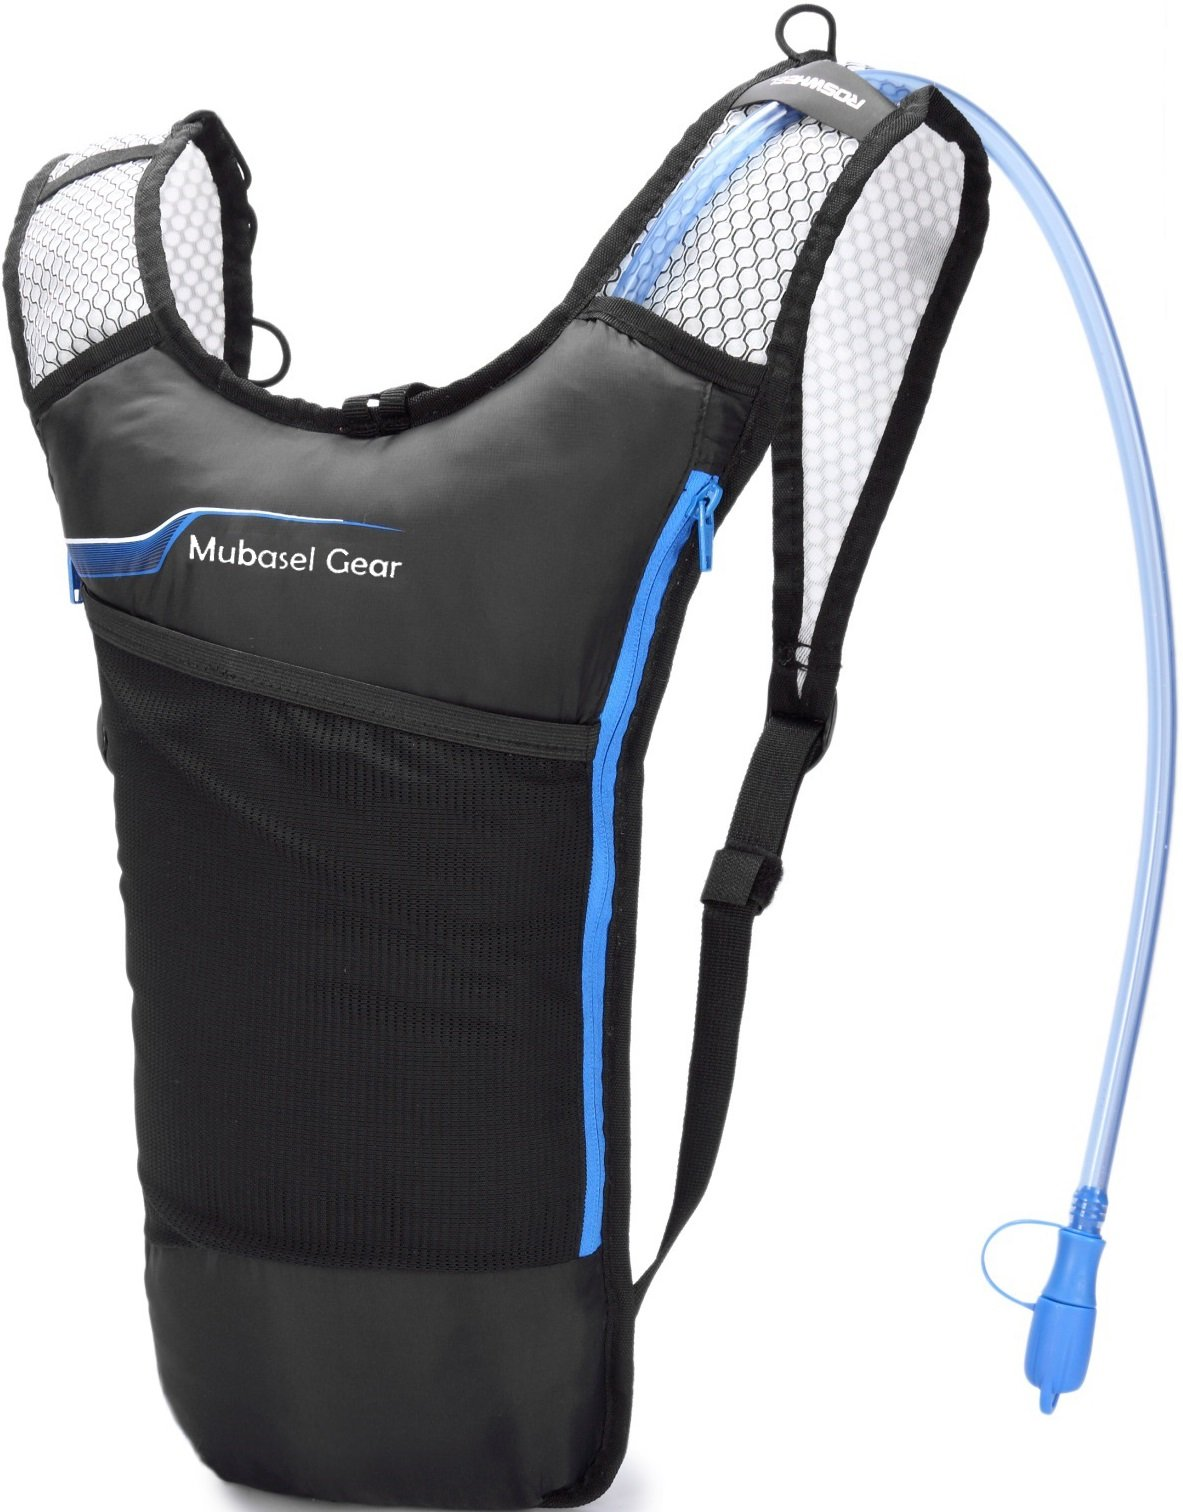 Hydration Backpack Pack with 2L BPA Free Bladder - Lightweight Pack Keeps Liquid Cool Up to 4 Hours - Great Storage Compartments - Outdoor Sports Gear for Running Hiking Cycling Skiing by Mubasel Gear